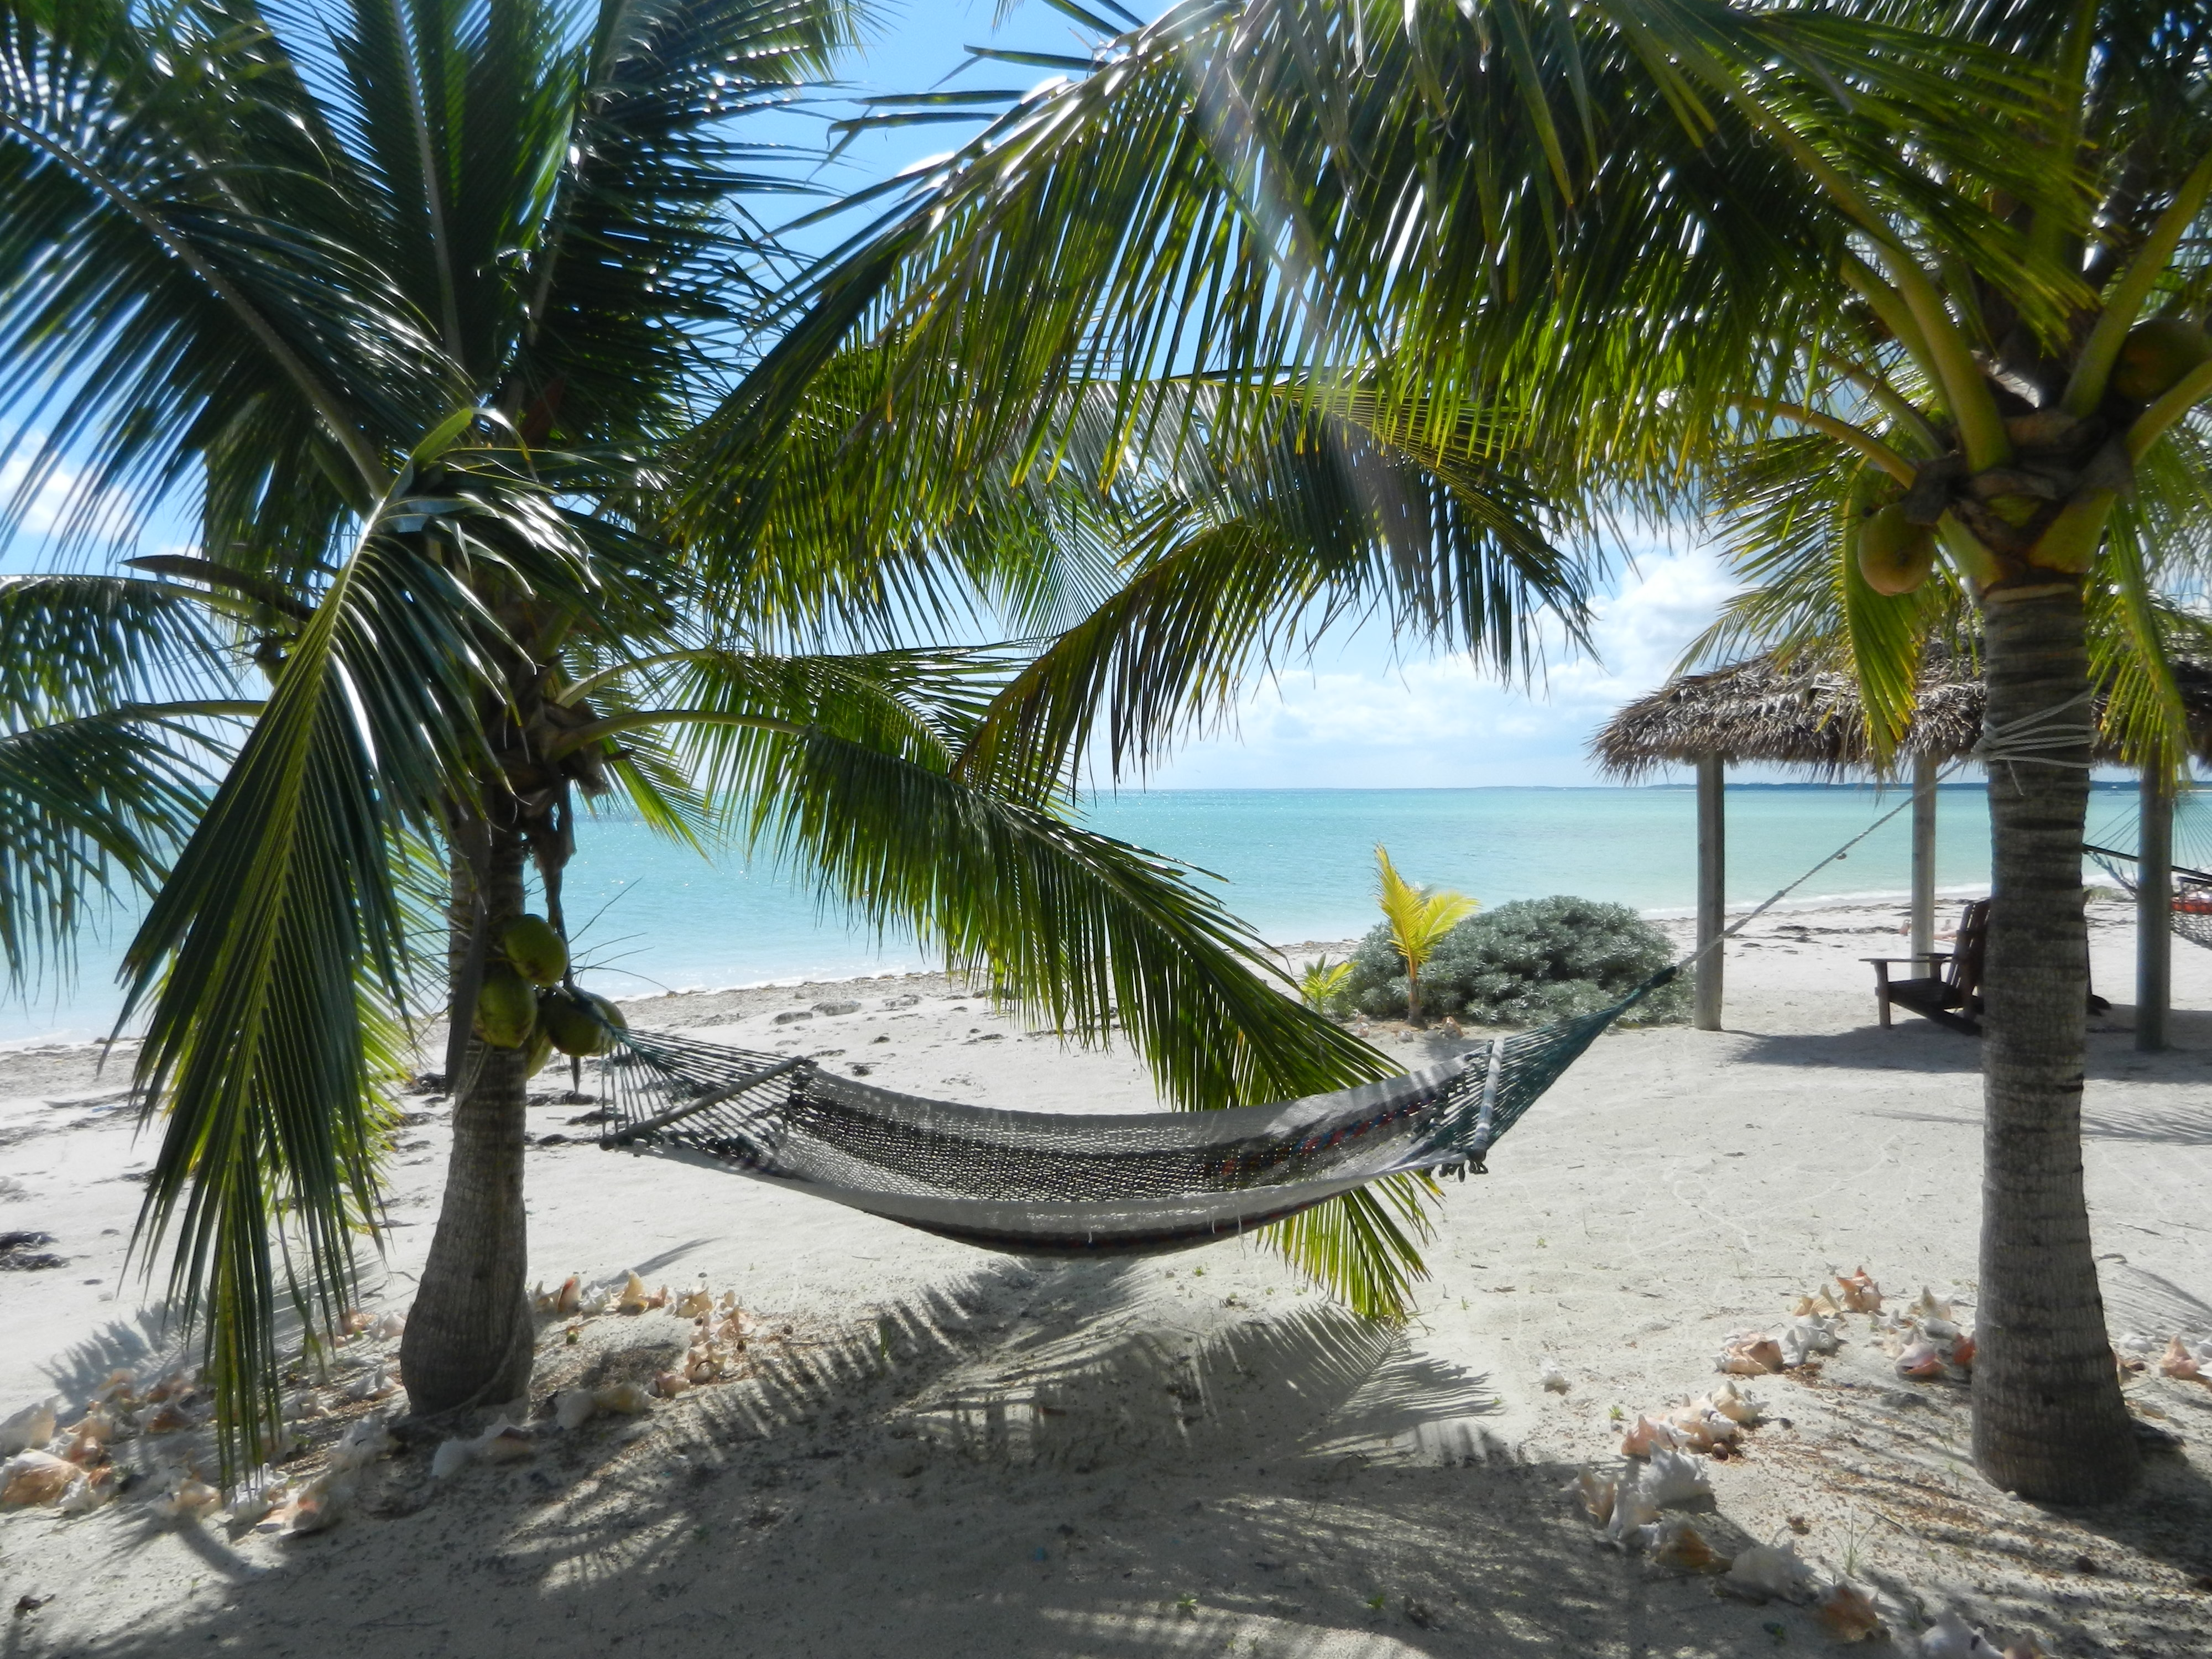 You can relax and enjoy the beach in the hammock under the coconut trees.